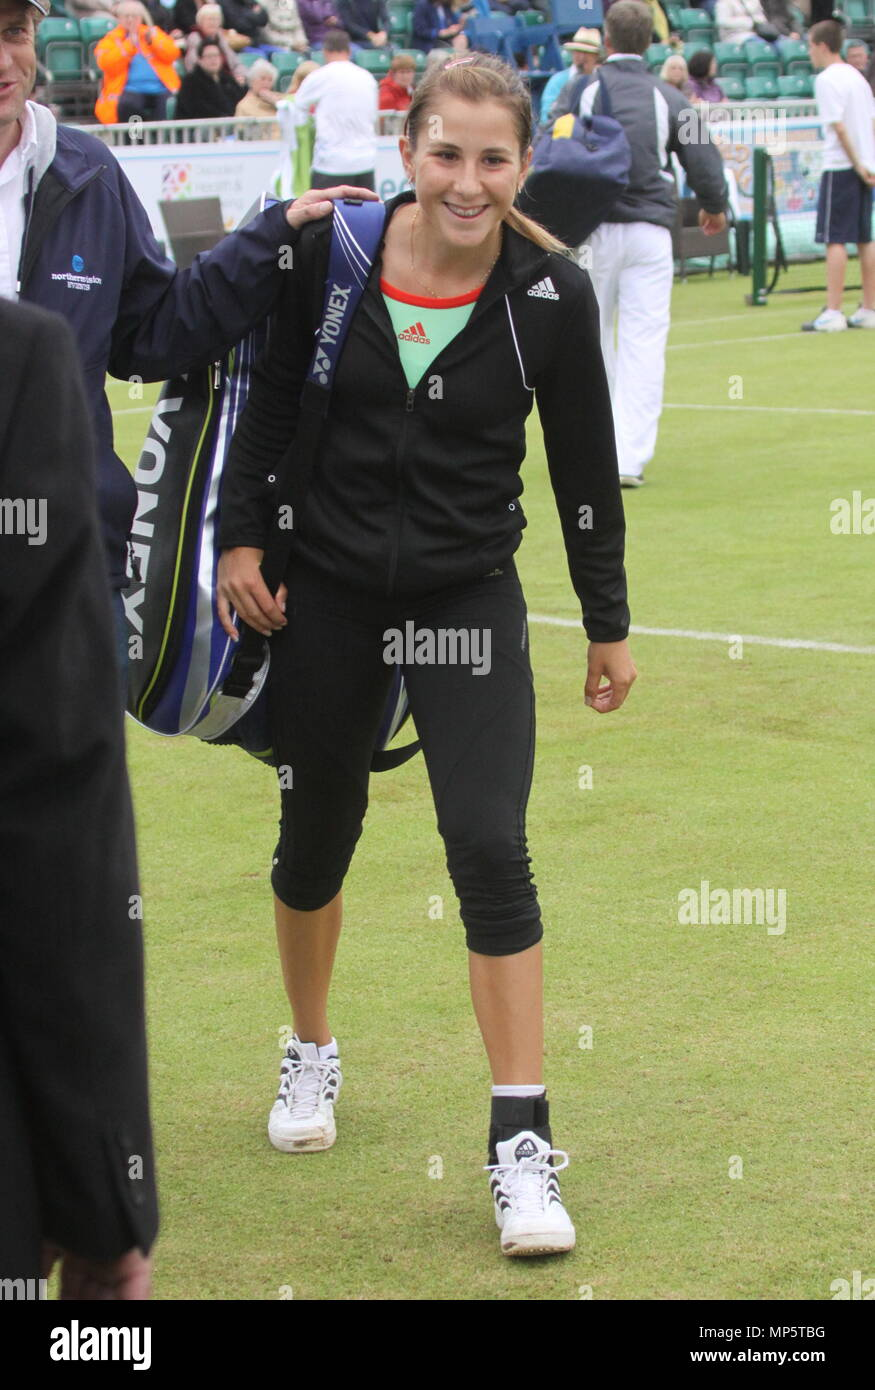 Liverpool,Uk, Swiss professional tennis player belinda-bencic plays at Liverpool Tennis Tournament credit Ian Fairbrother/Alamy Stock Photo